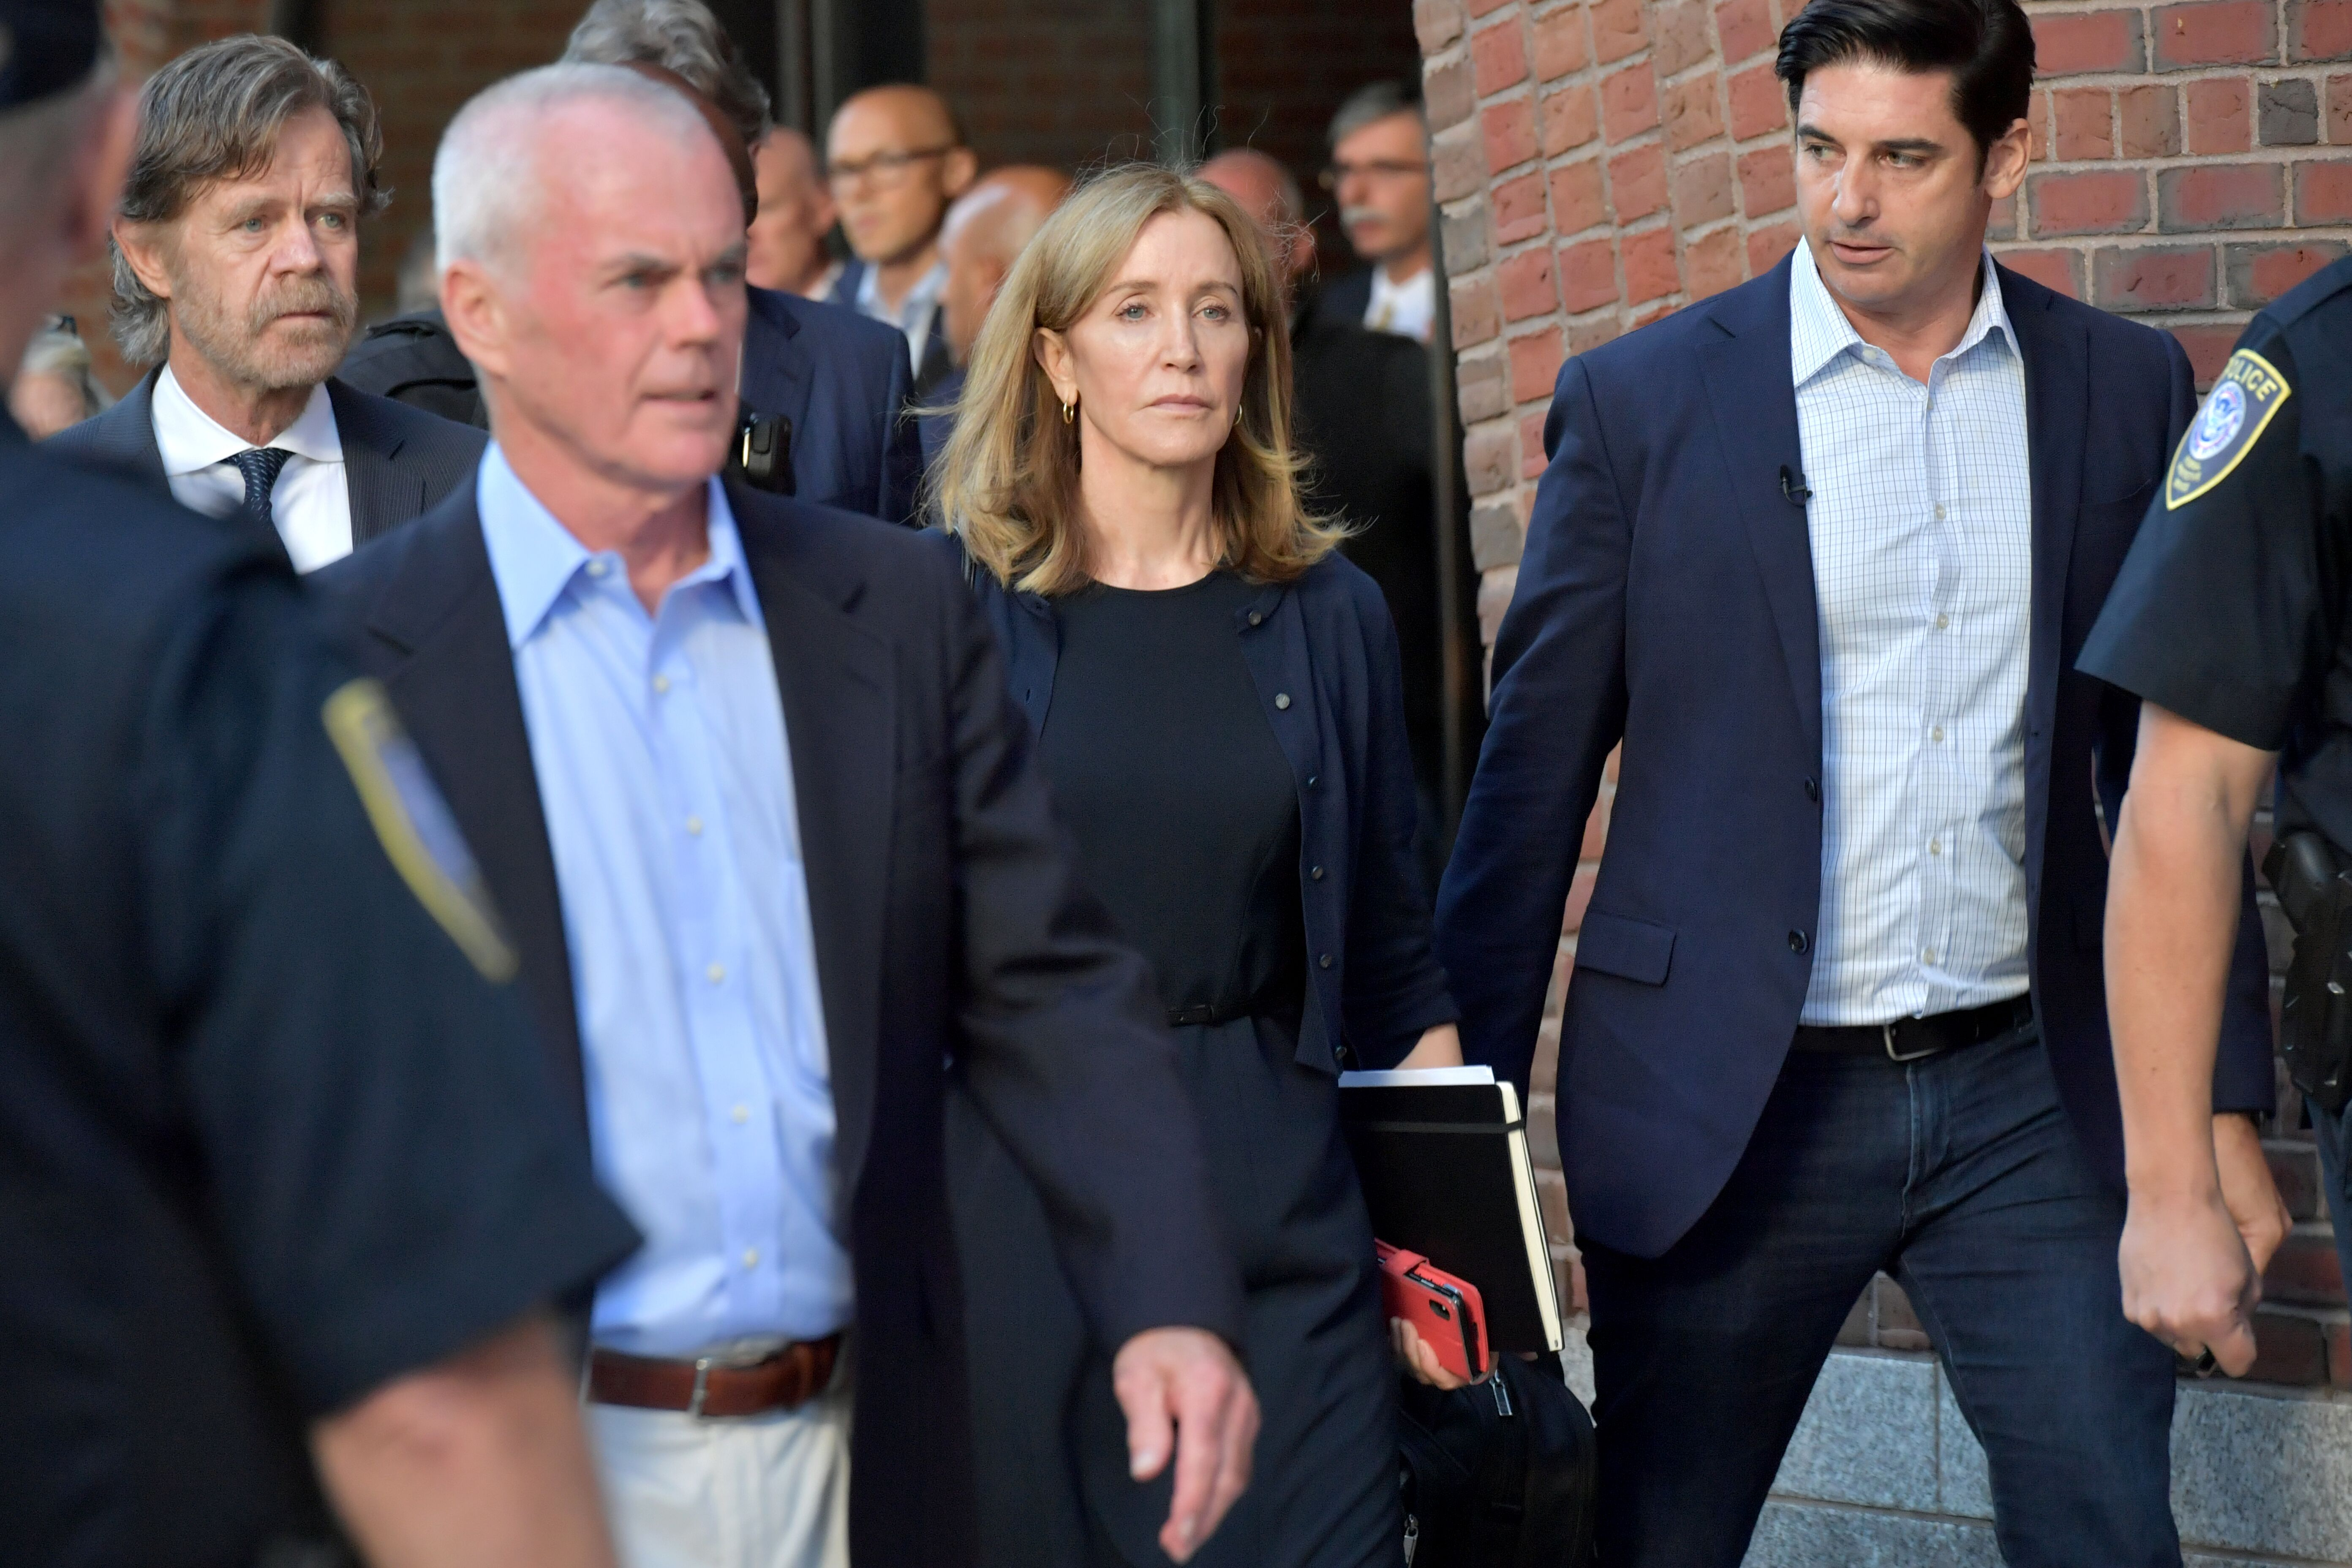 Felicity Huffman and William Macy exit John Moakley U.S. Courthouse on September 13, 2019 | Source: Getty Images